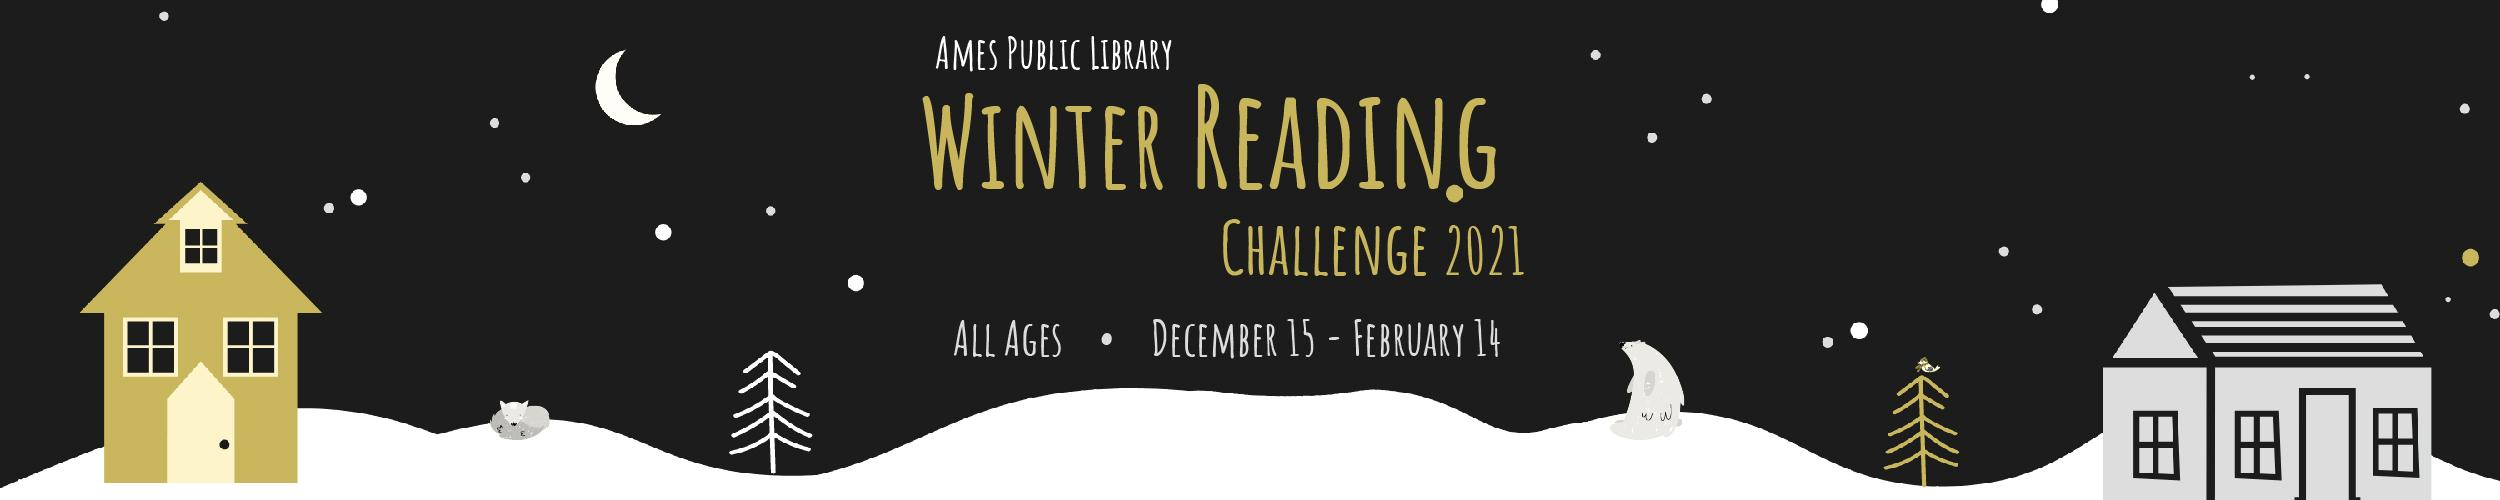 Winter Reading Challenge 2021 slide with graphics cozy winter landscape